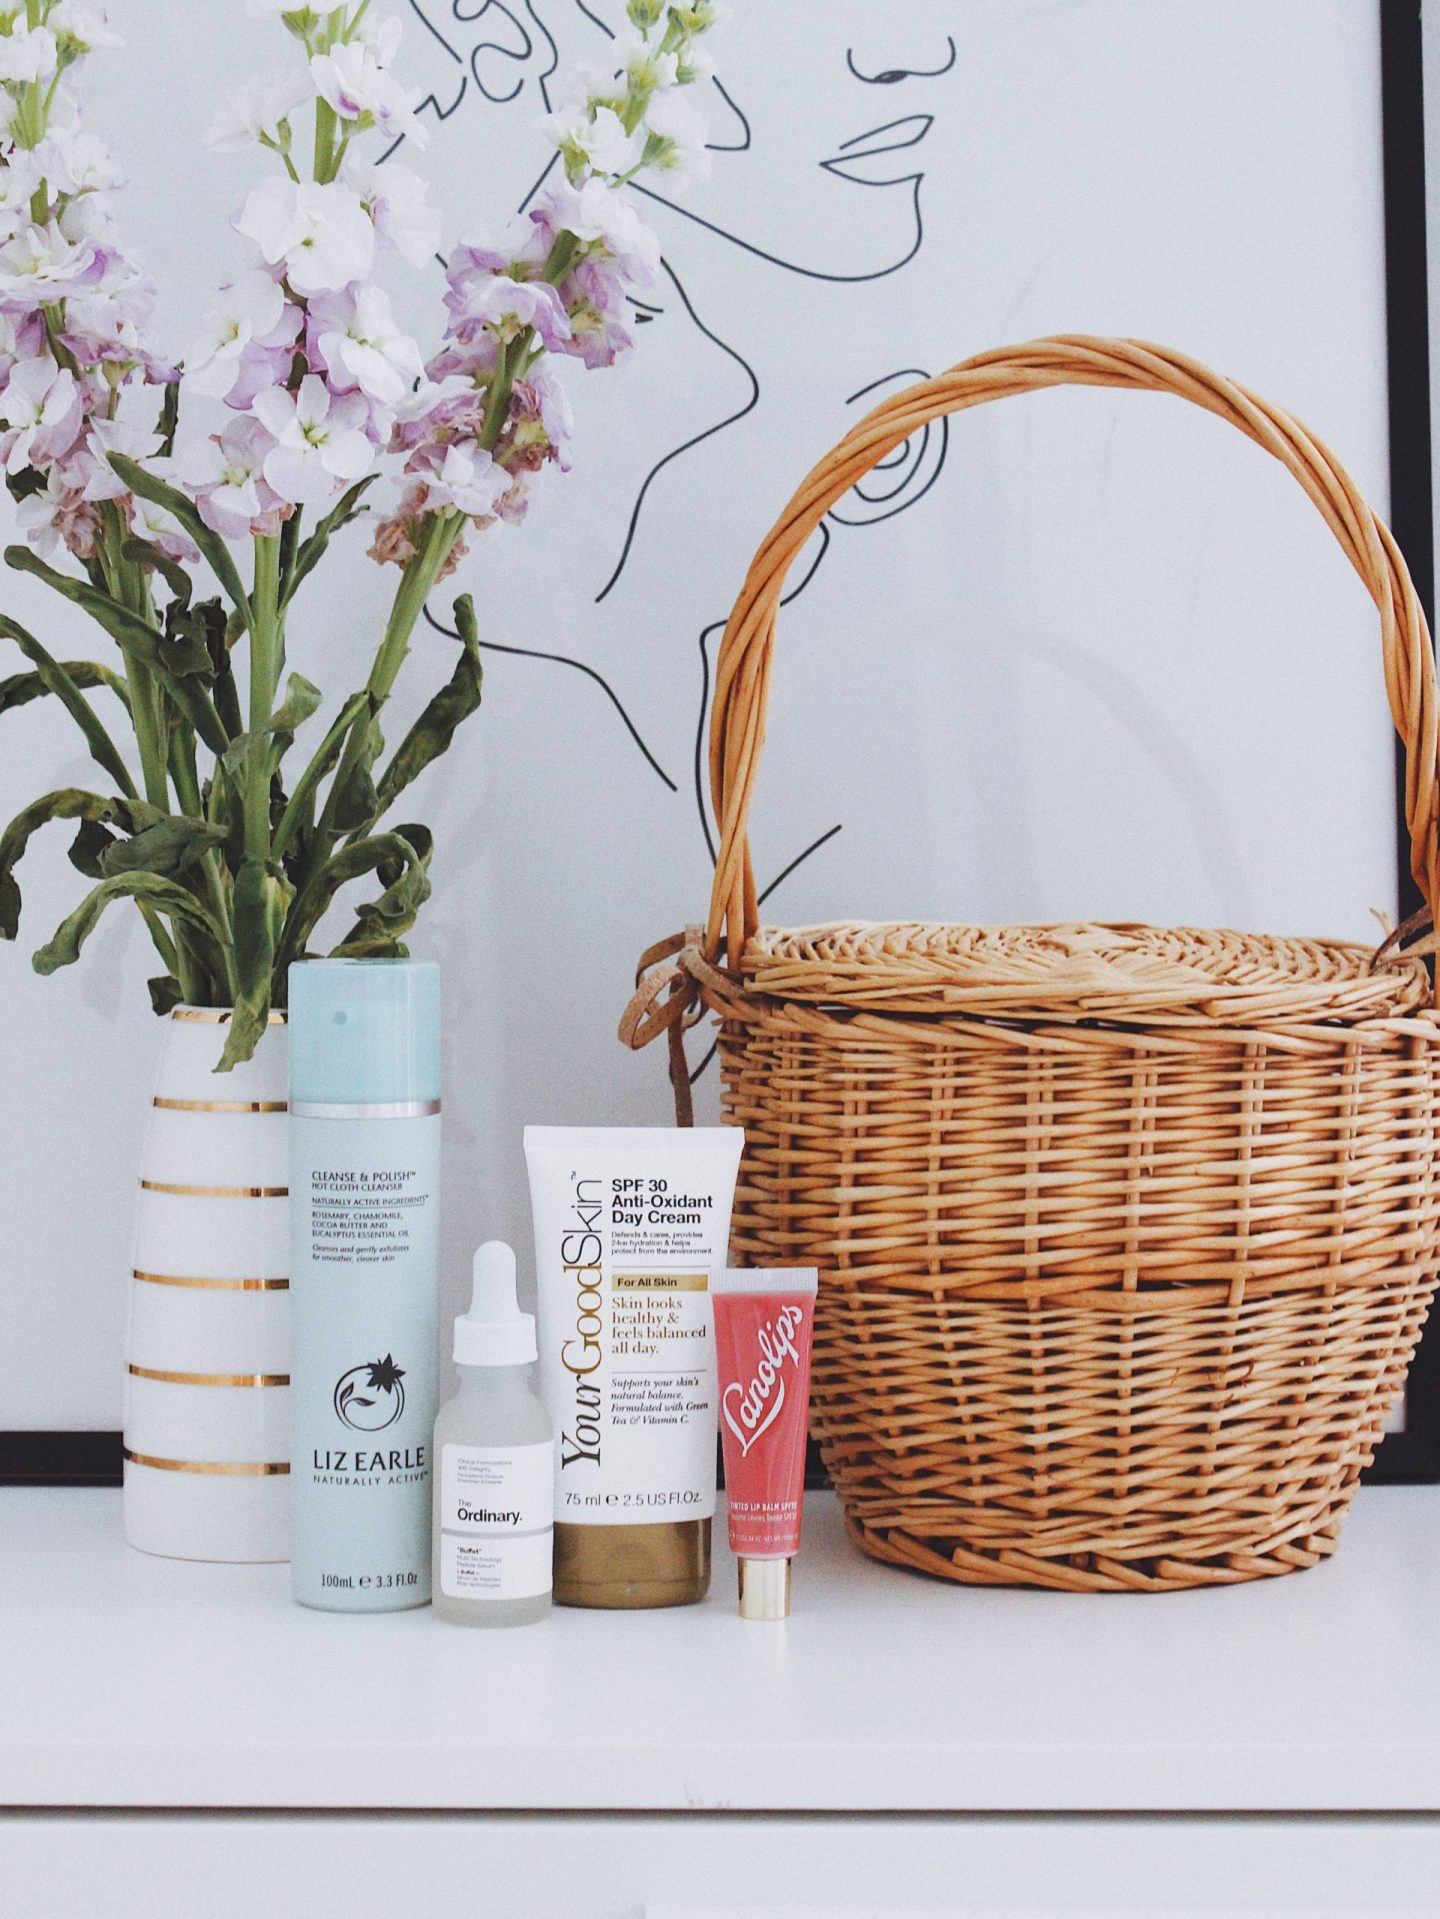 Boots summer skincare routine